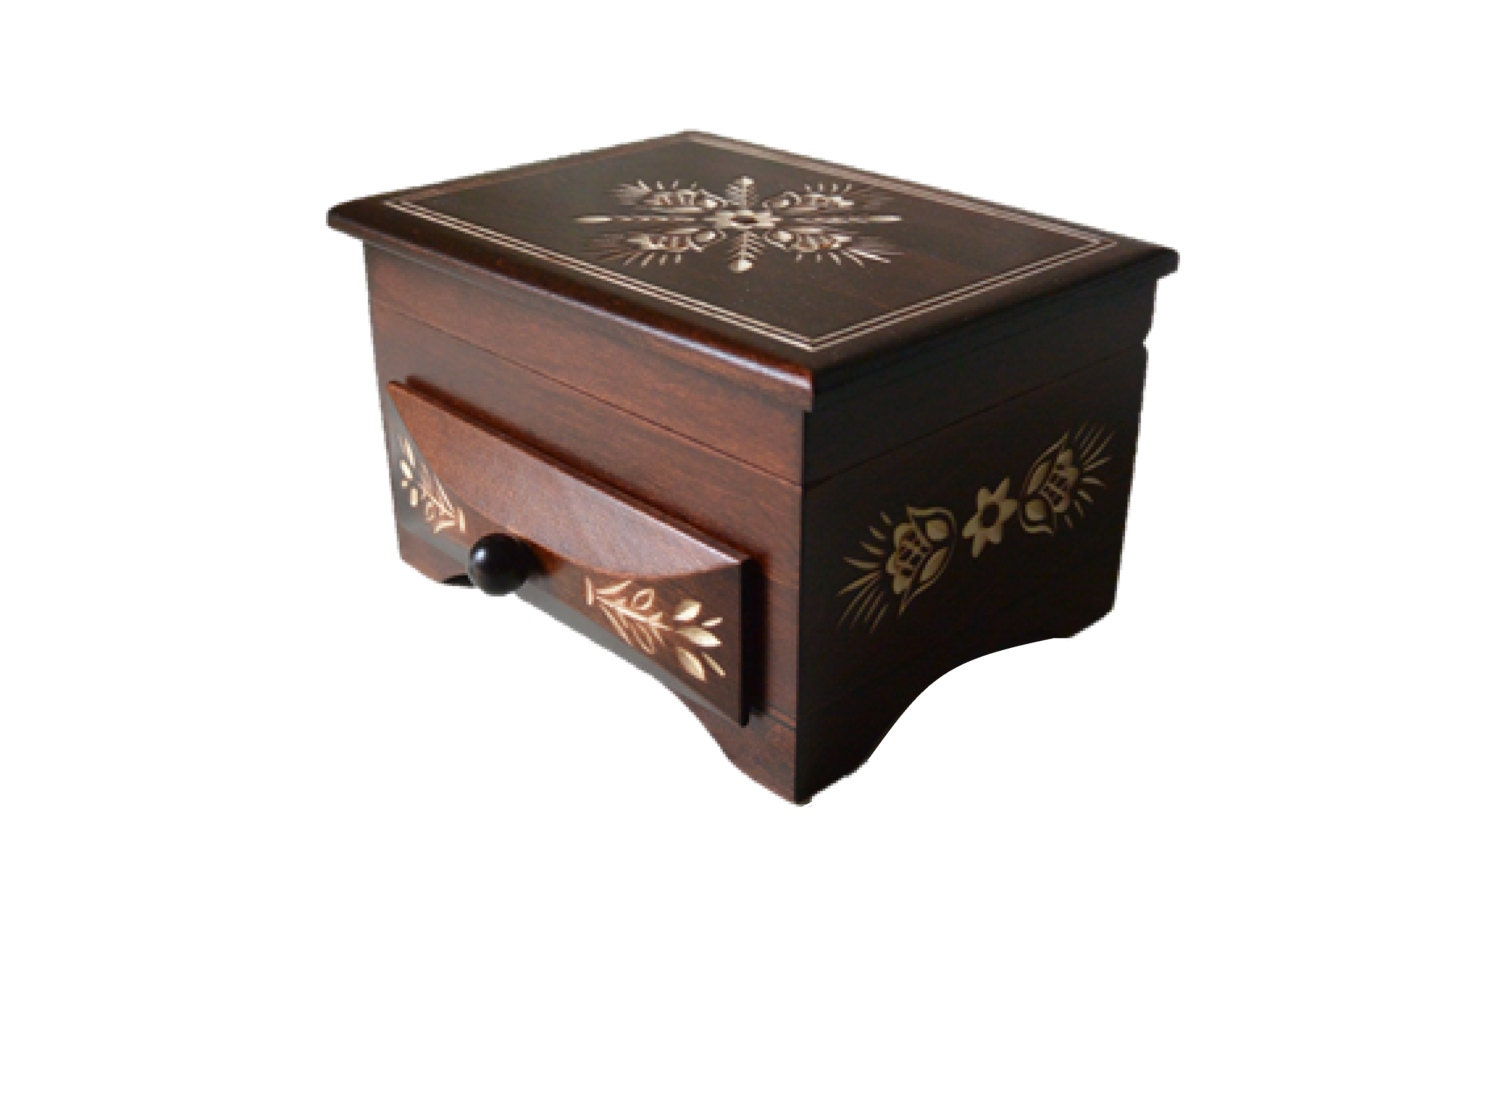 Handmade wooden jewellery chestkeepsake box Small drawer box Jewelery storage box Wood box